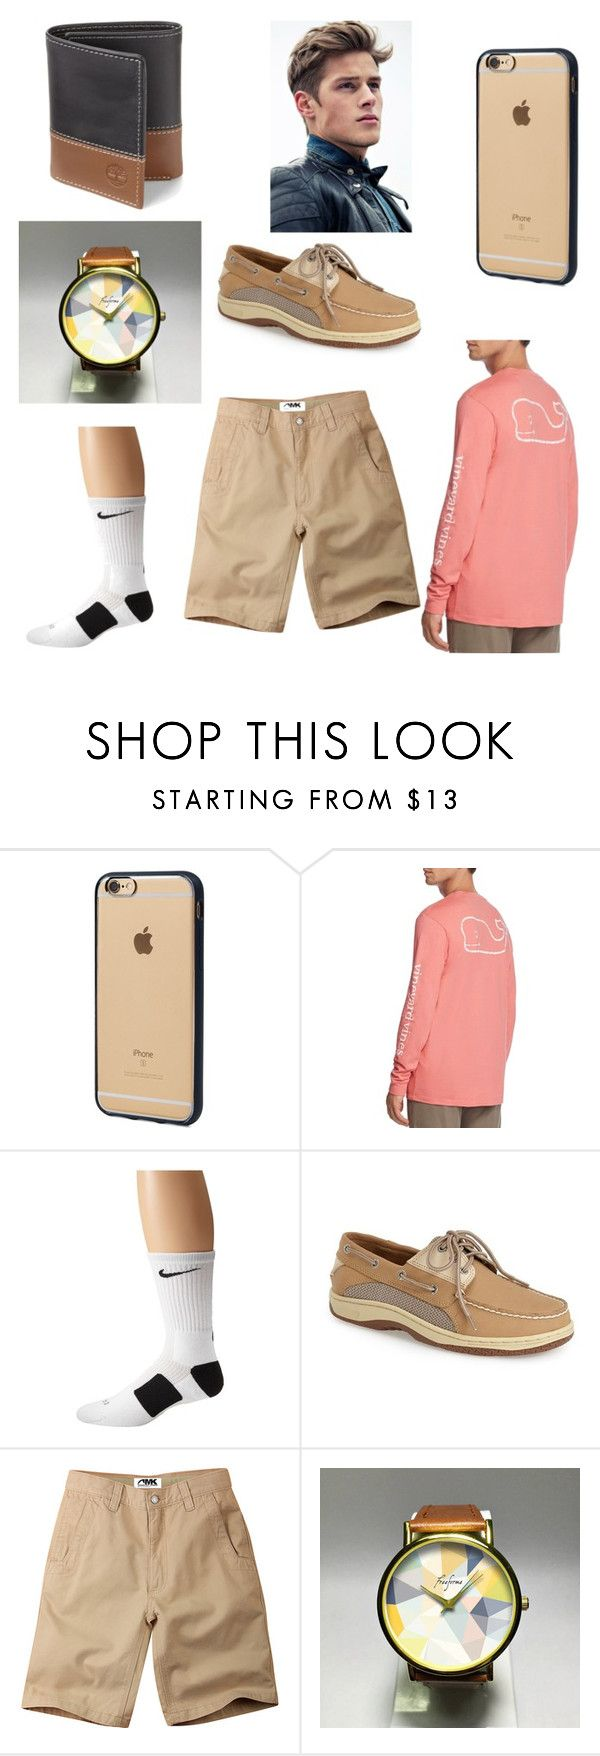 """Untitled #17"" by logane08 ❤ liked on Polyvore featuring Incase, Vineyard Vines, NIKE, Sperry, Mountain Khakis, Timberland, men's fashion and menswear"